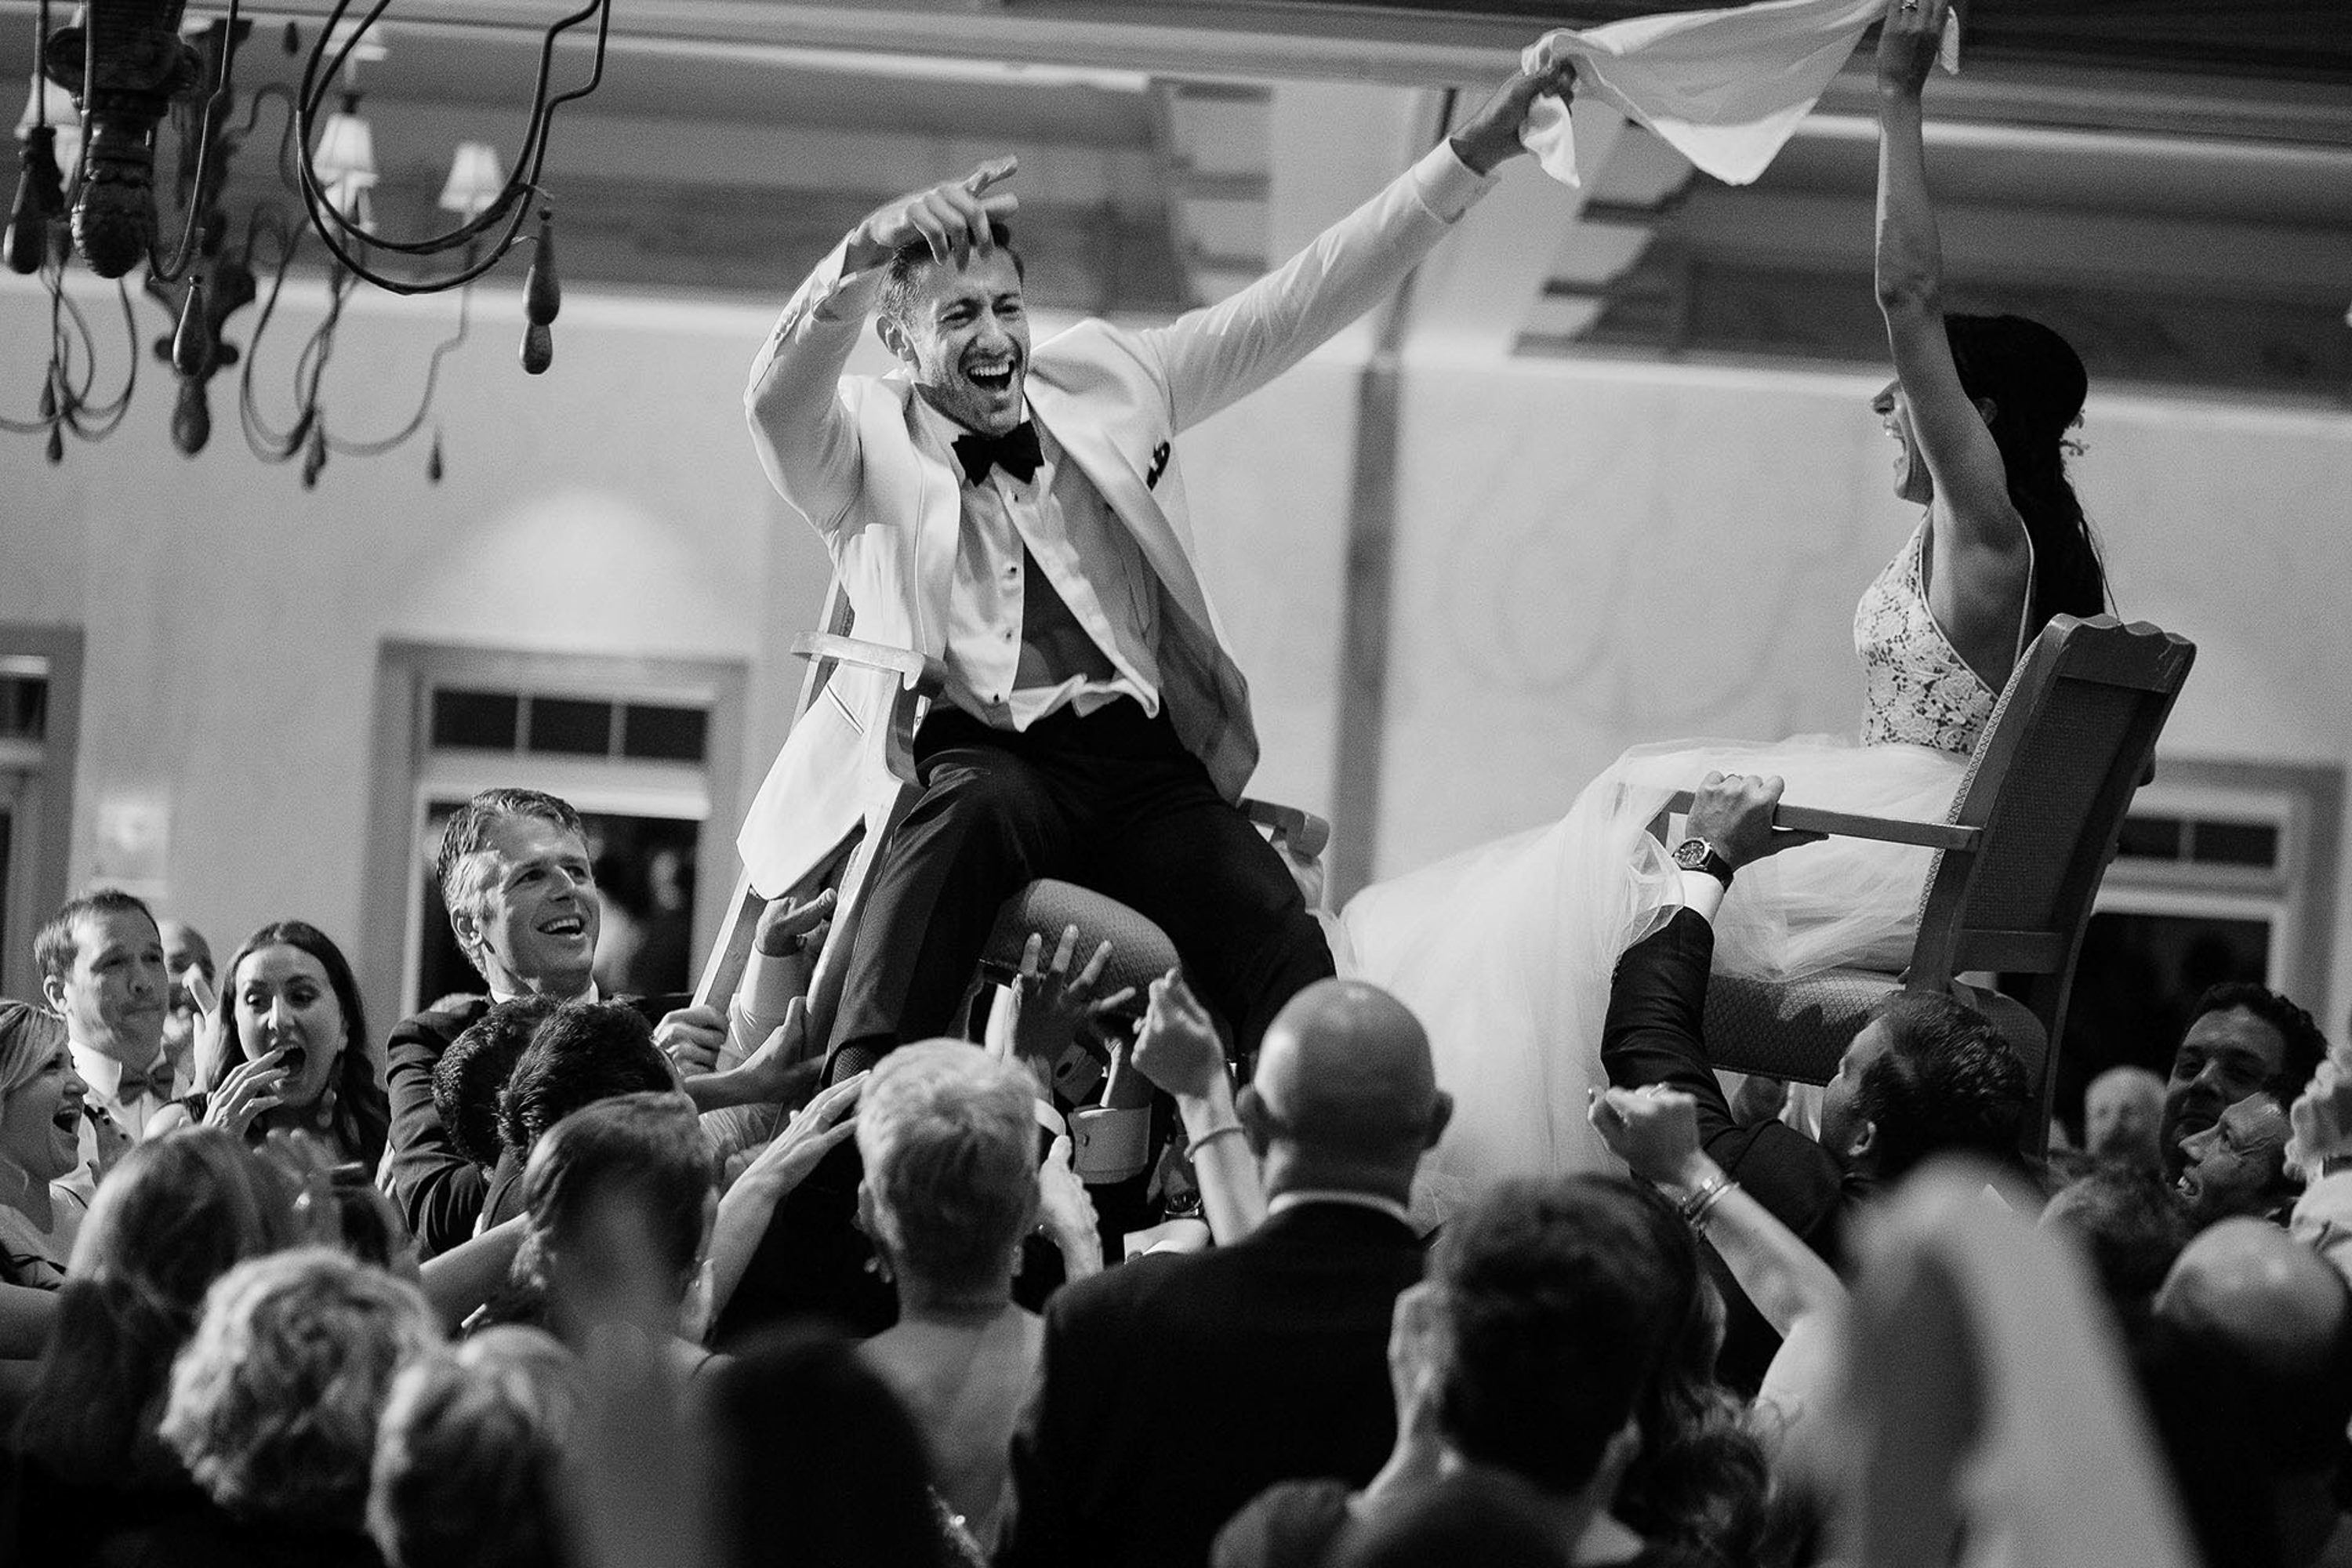 Action shot of bride and groom dancing on lifted chairs - photo by Alex Paul Photography